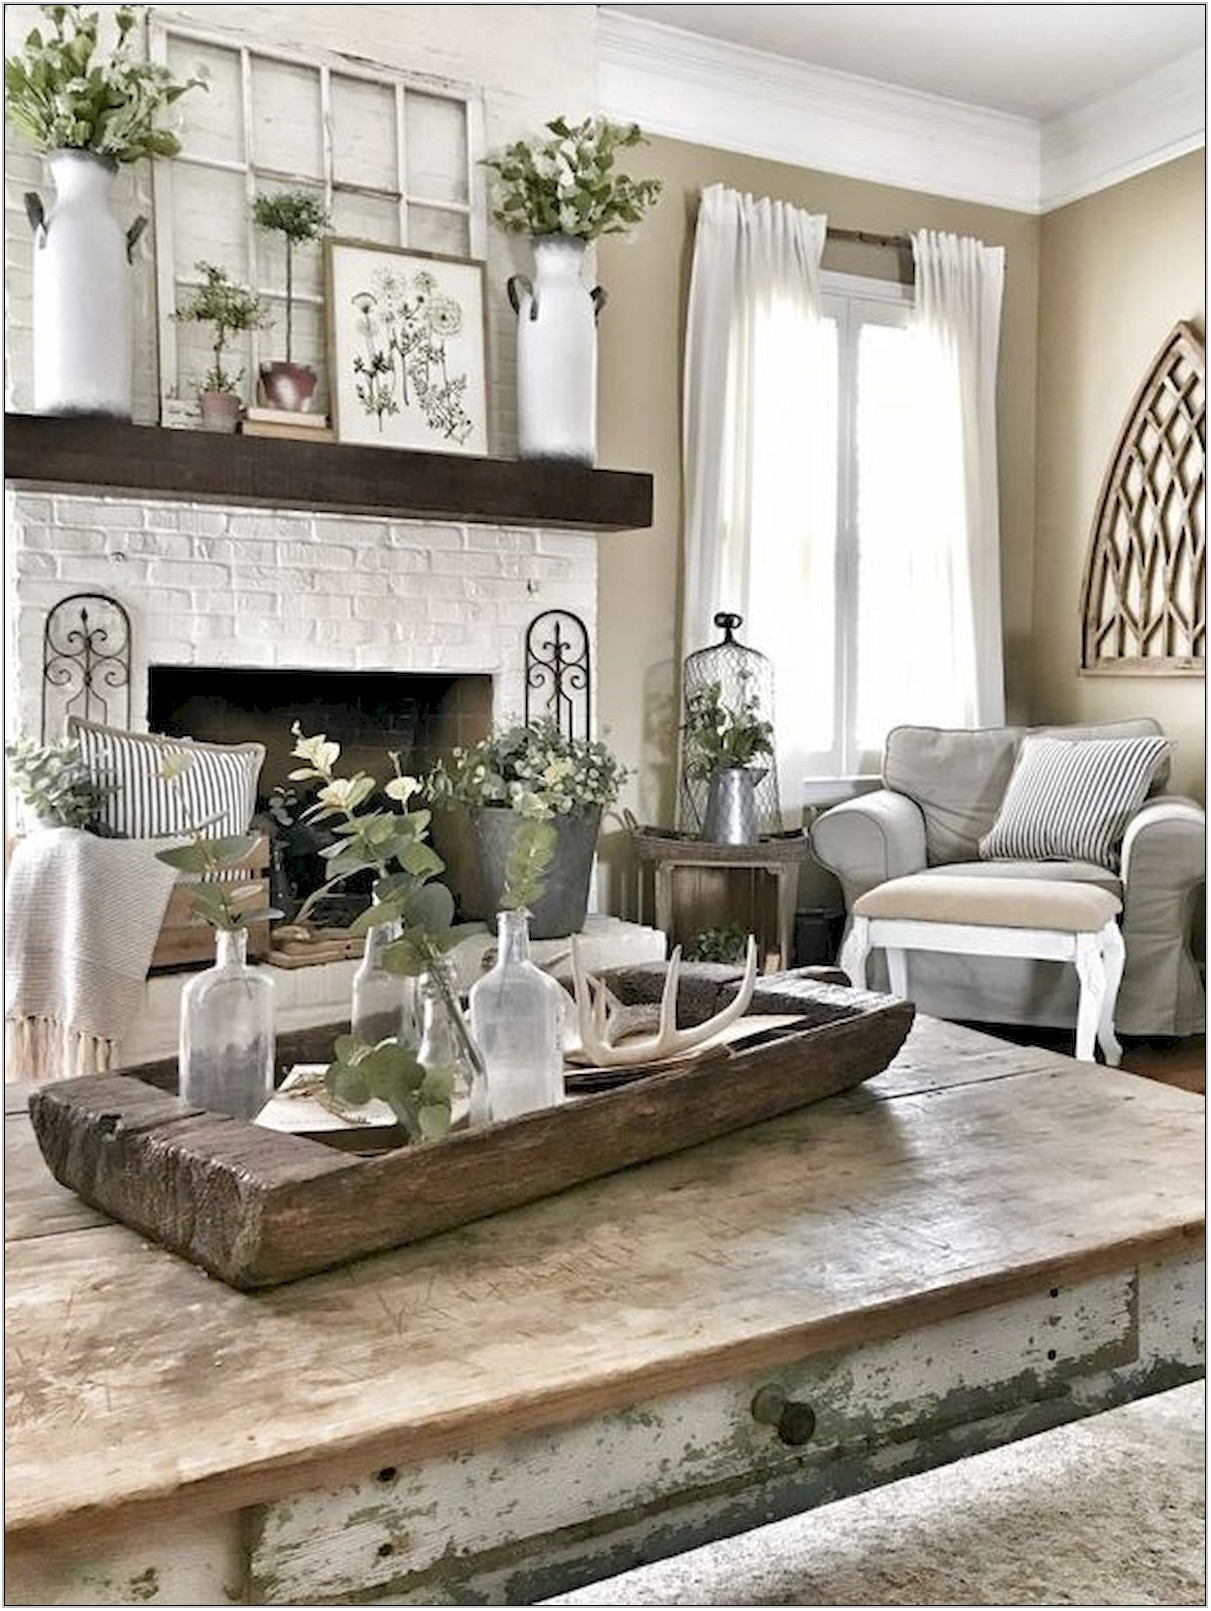 Farmhouse Living Room Wall Decor Ideas